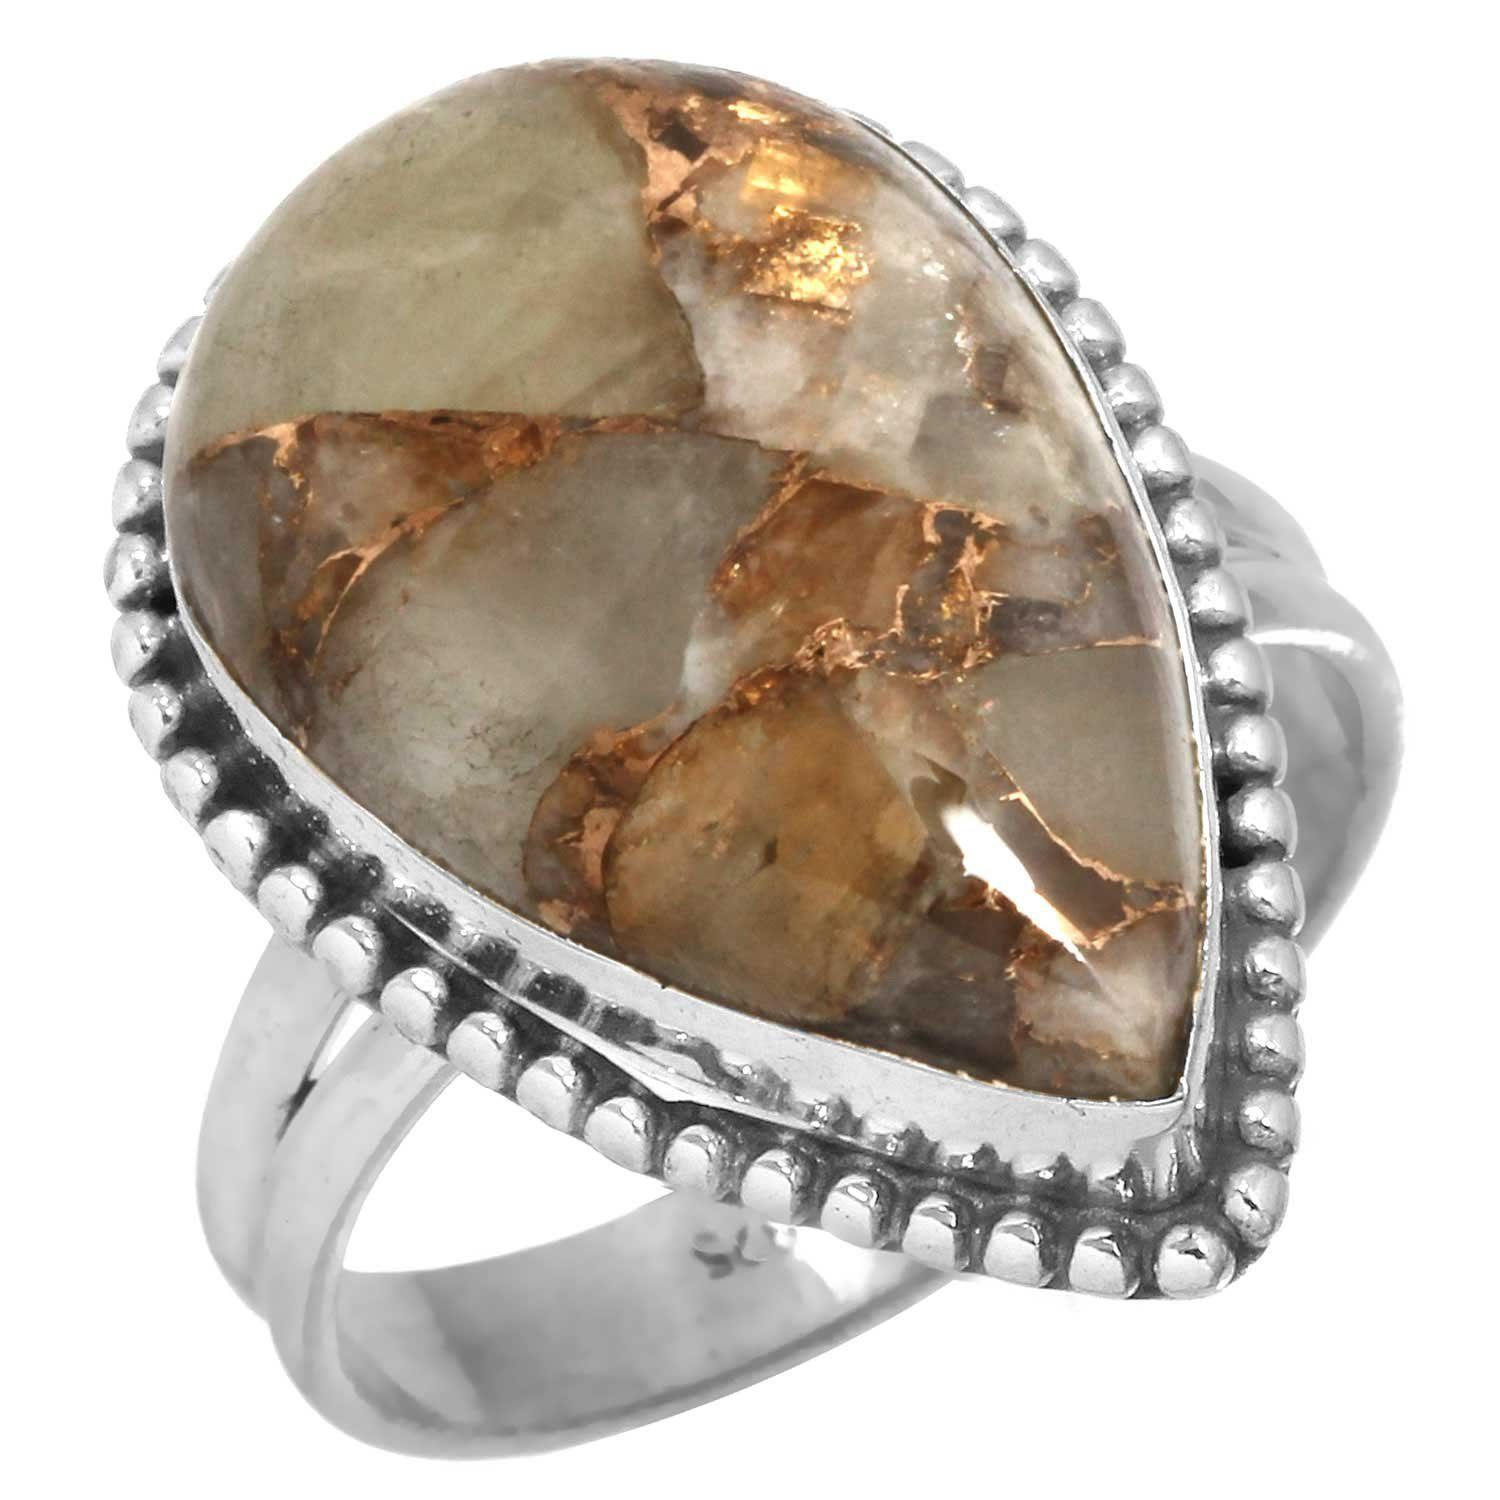 Solid 925 Sterling Silver Ring Natural Copper Calcite Gemstone Handmade Jewelry Size S